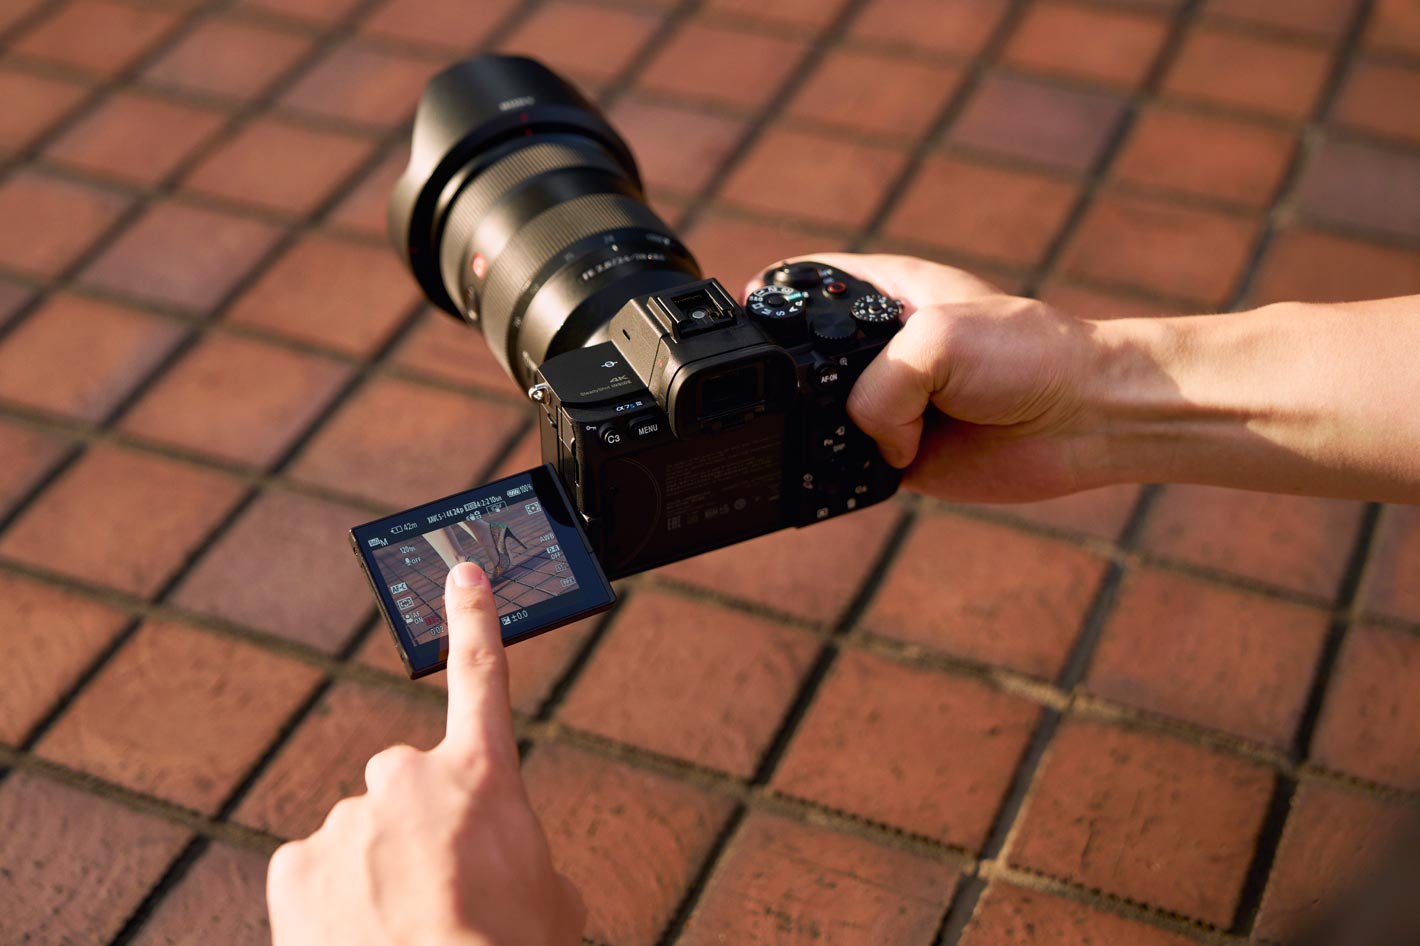 Sony Alpha 7S III: designed for photo and video journalists